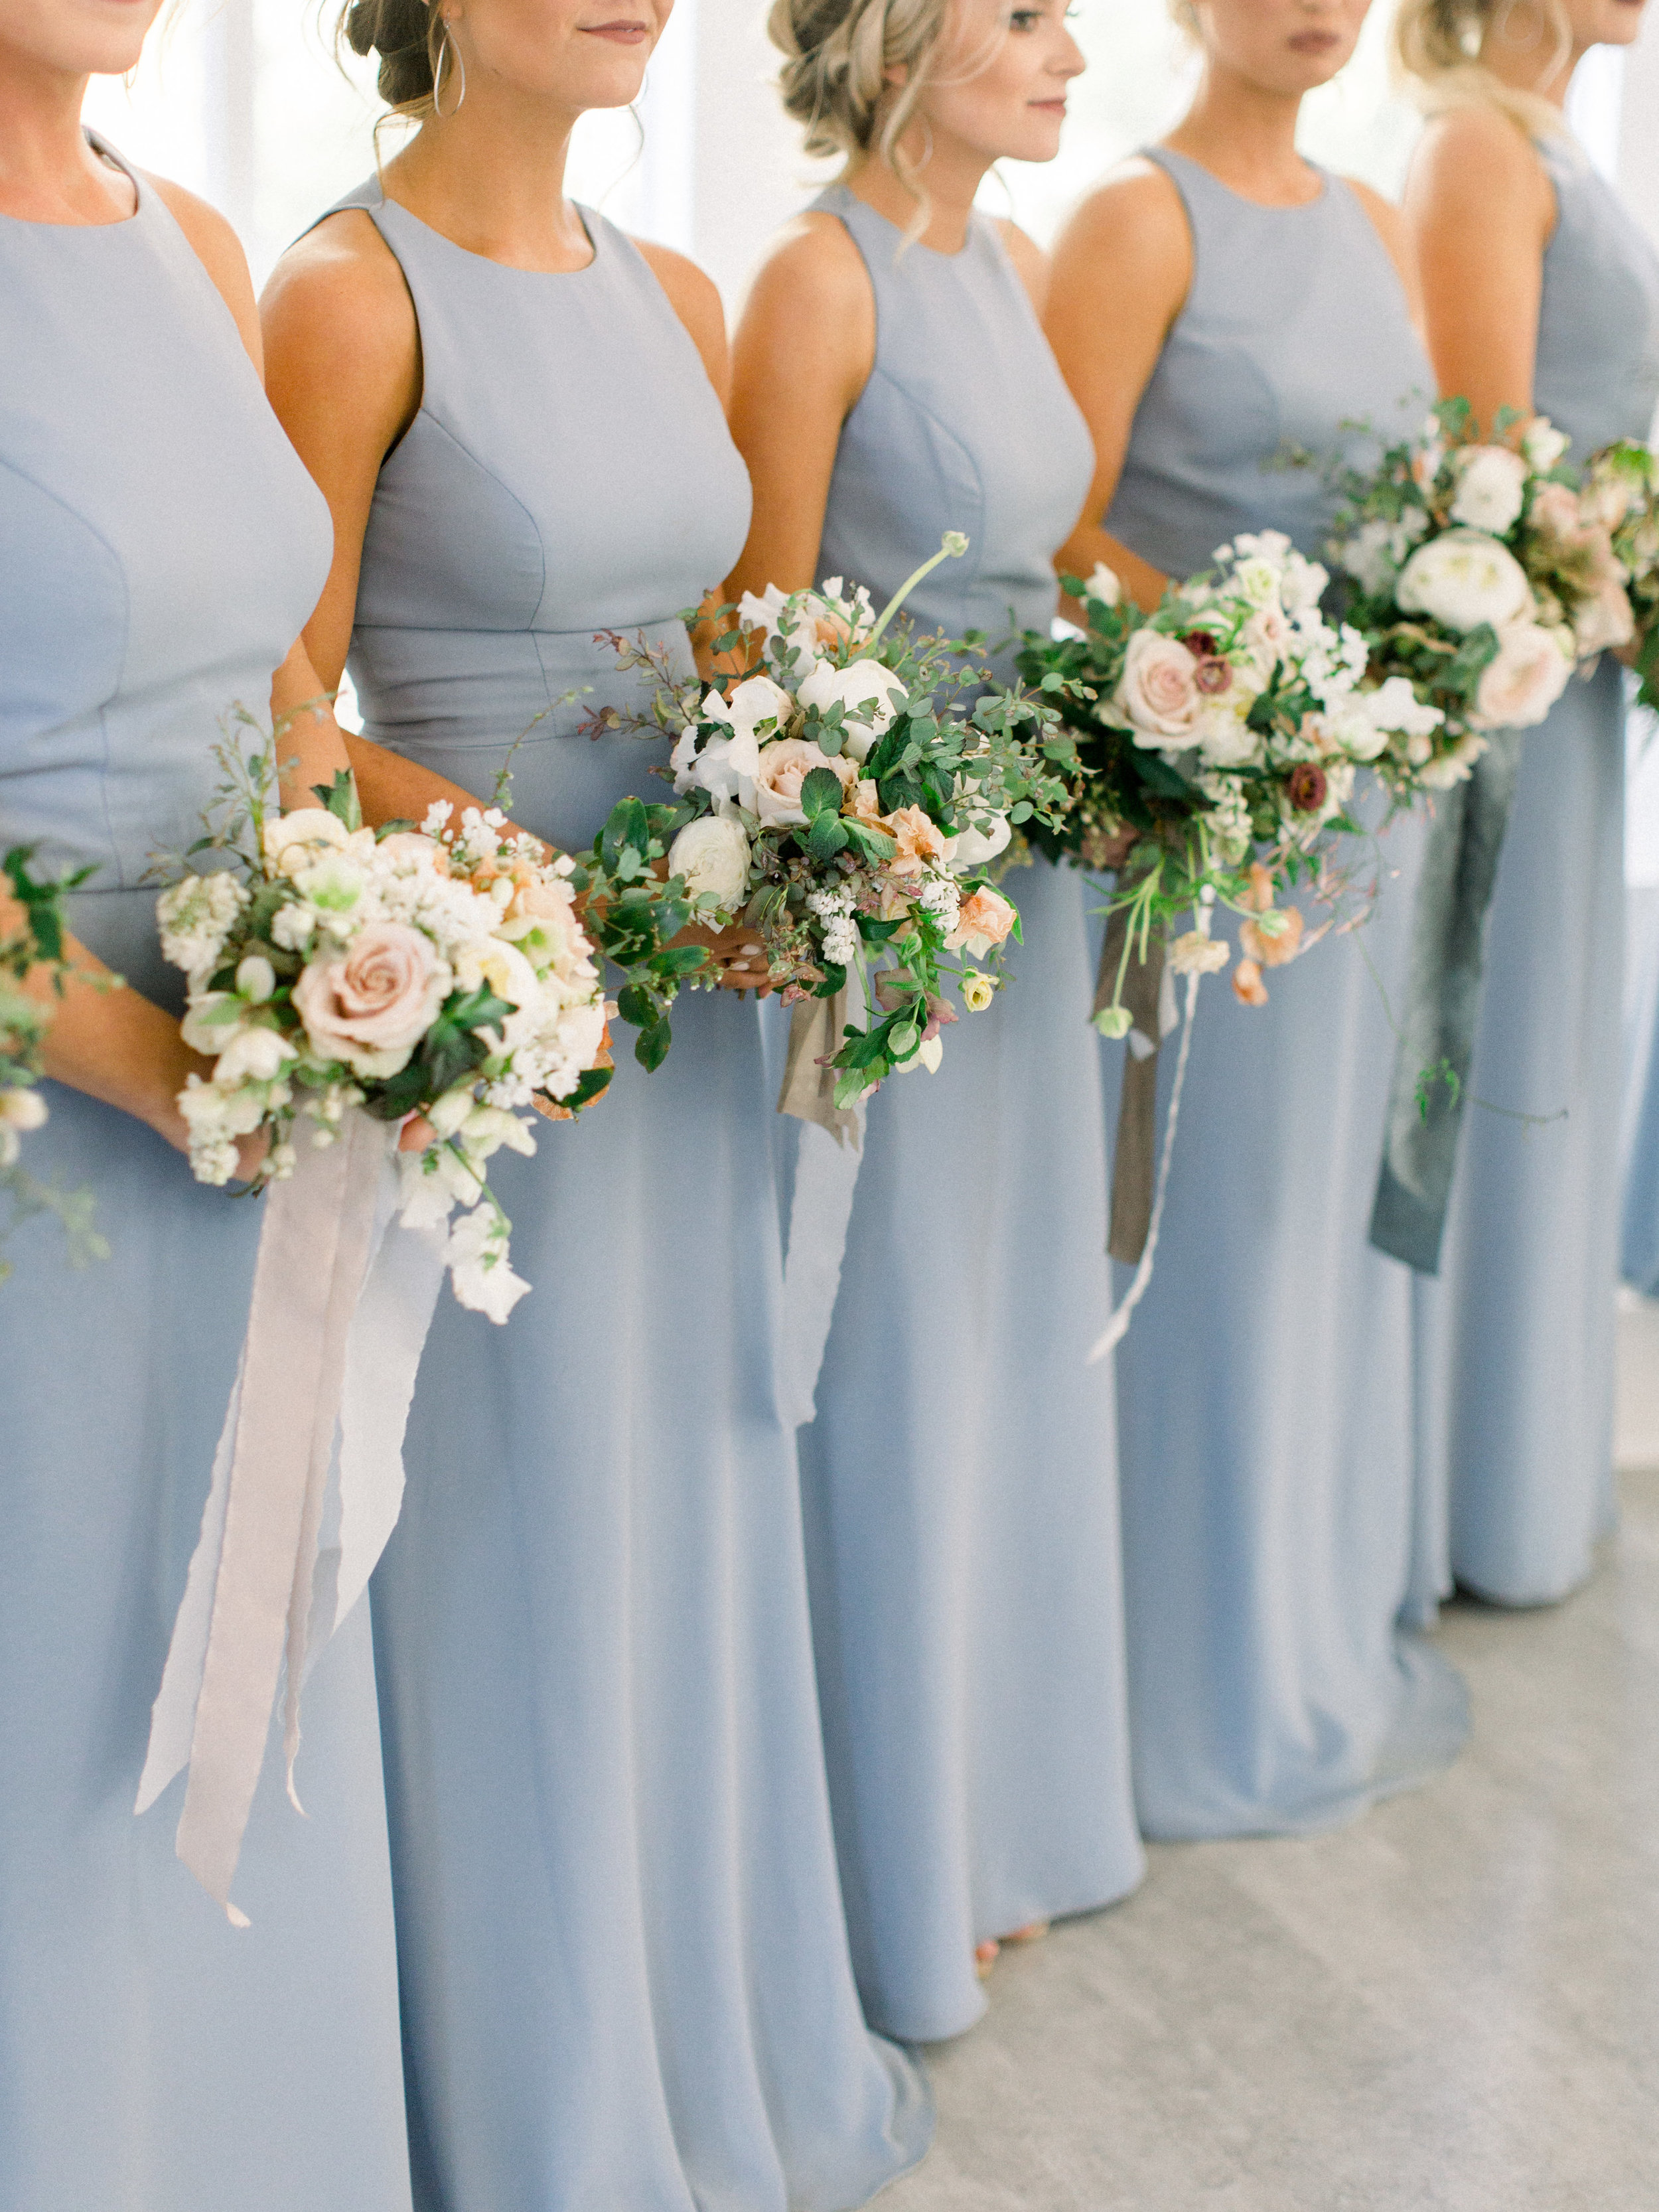 jessica-zimmerman-bridesmaid-bouquets-blue-silk-ribbon.jpg